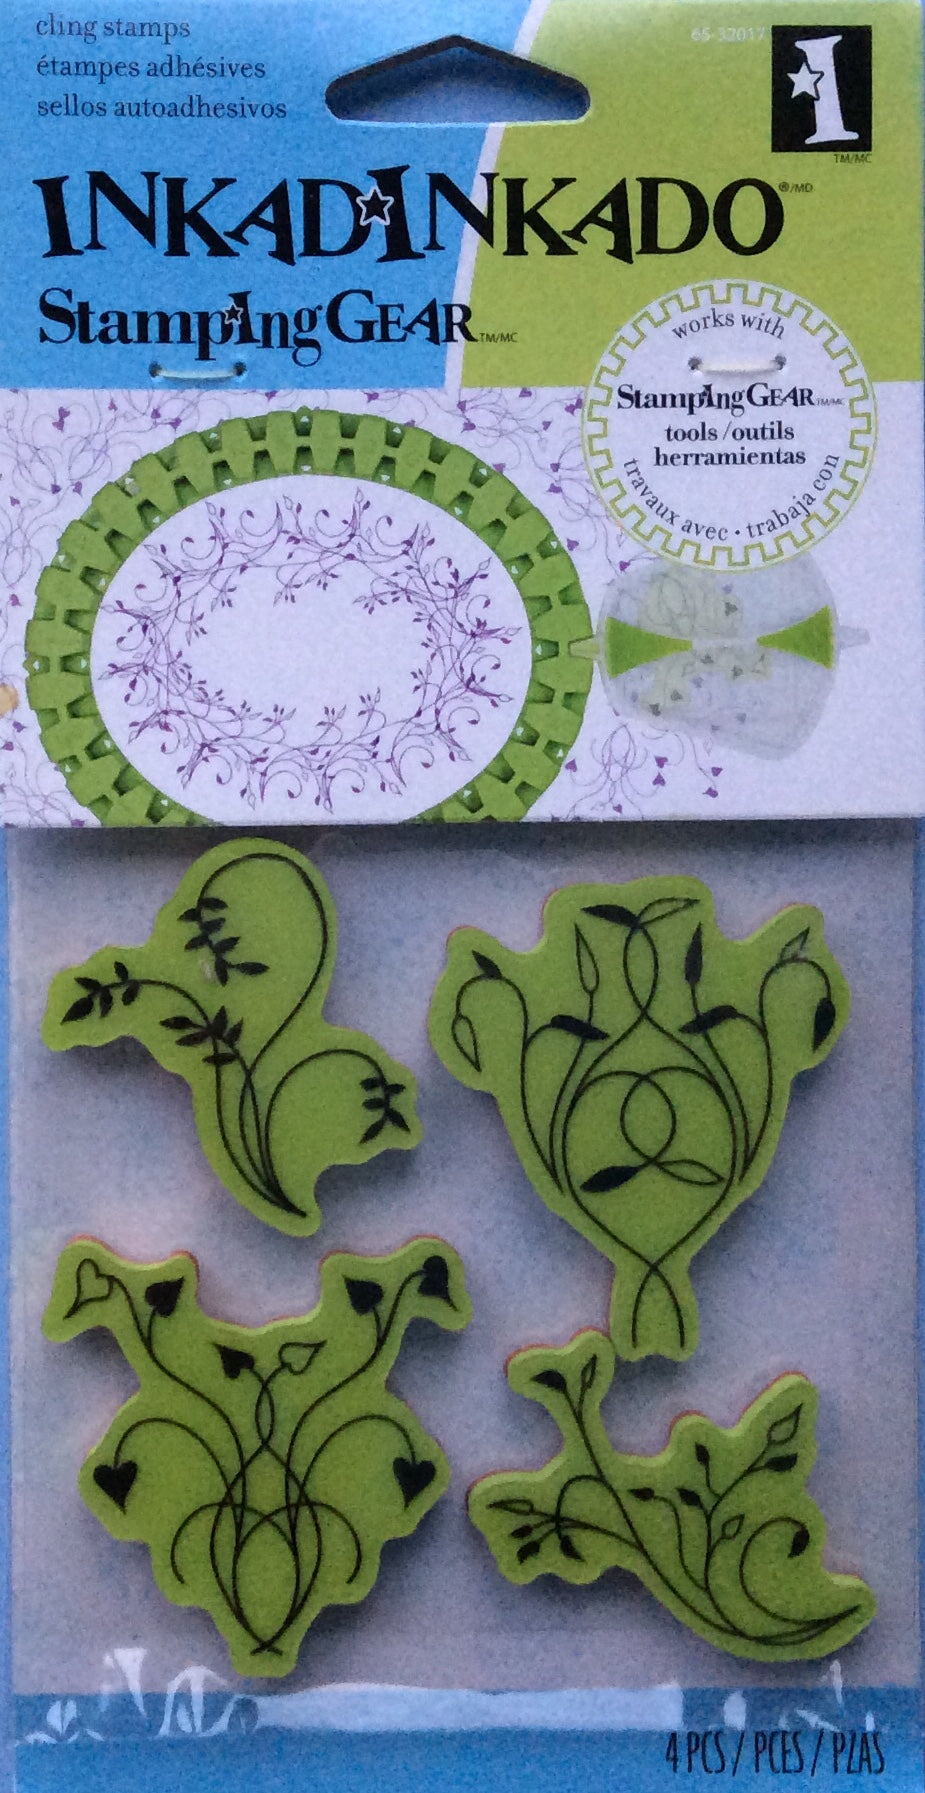 Cling Stamps - Inkadinkado Stamping Gear 4 Piece Rubber Stamp Set - Twisted Vines